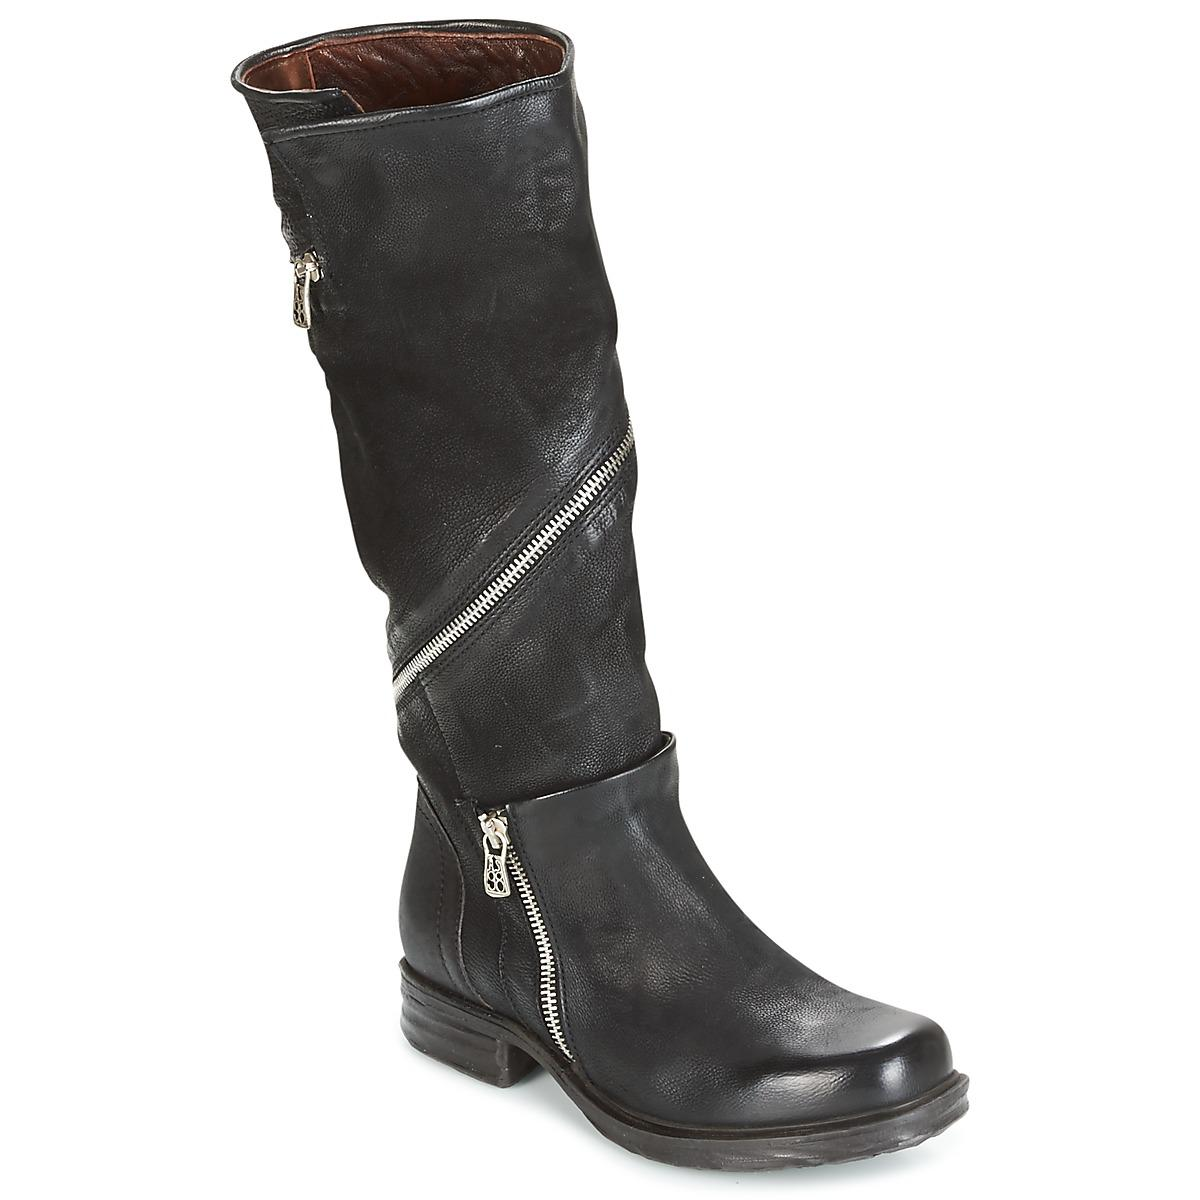 Womens Saintec High Boots A.S.98 Free Shipping View Marketable Cheap Sale Visit Clearance Official LnXRceW